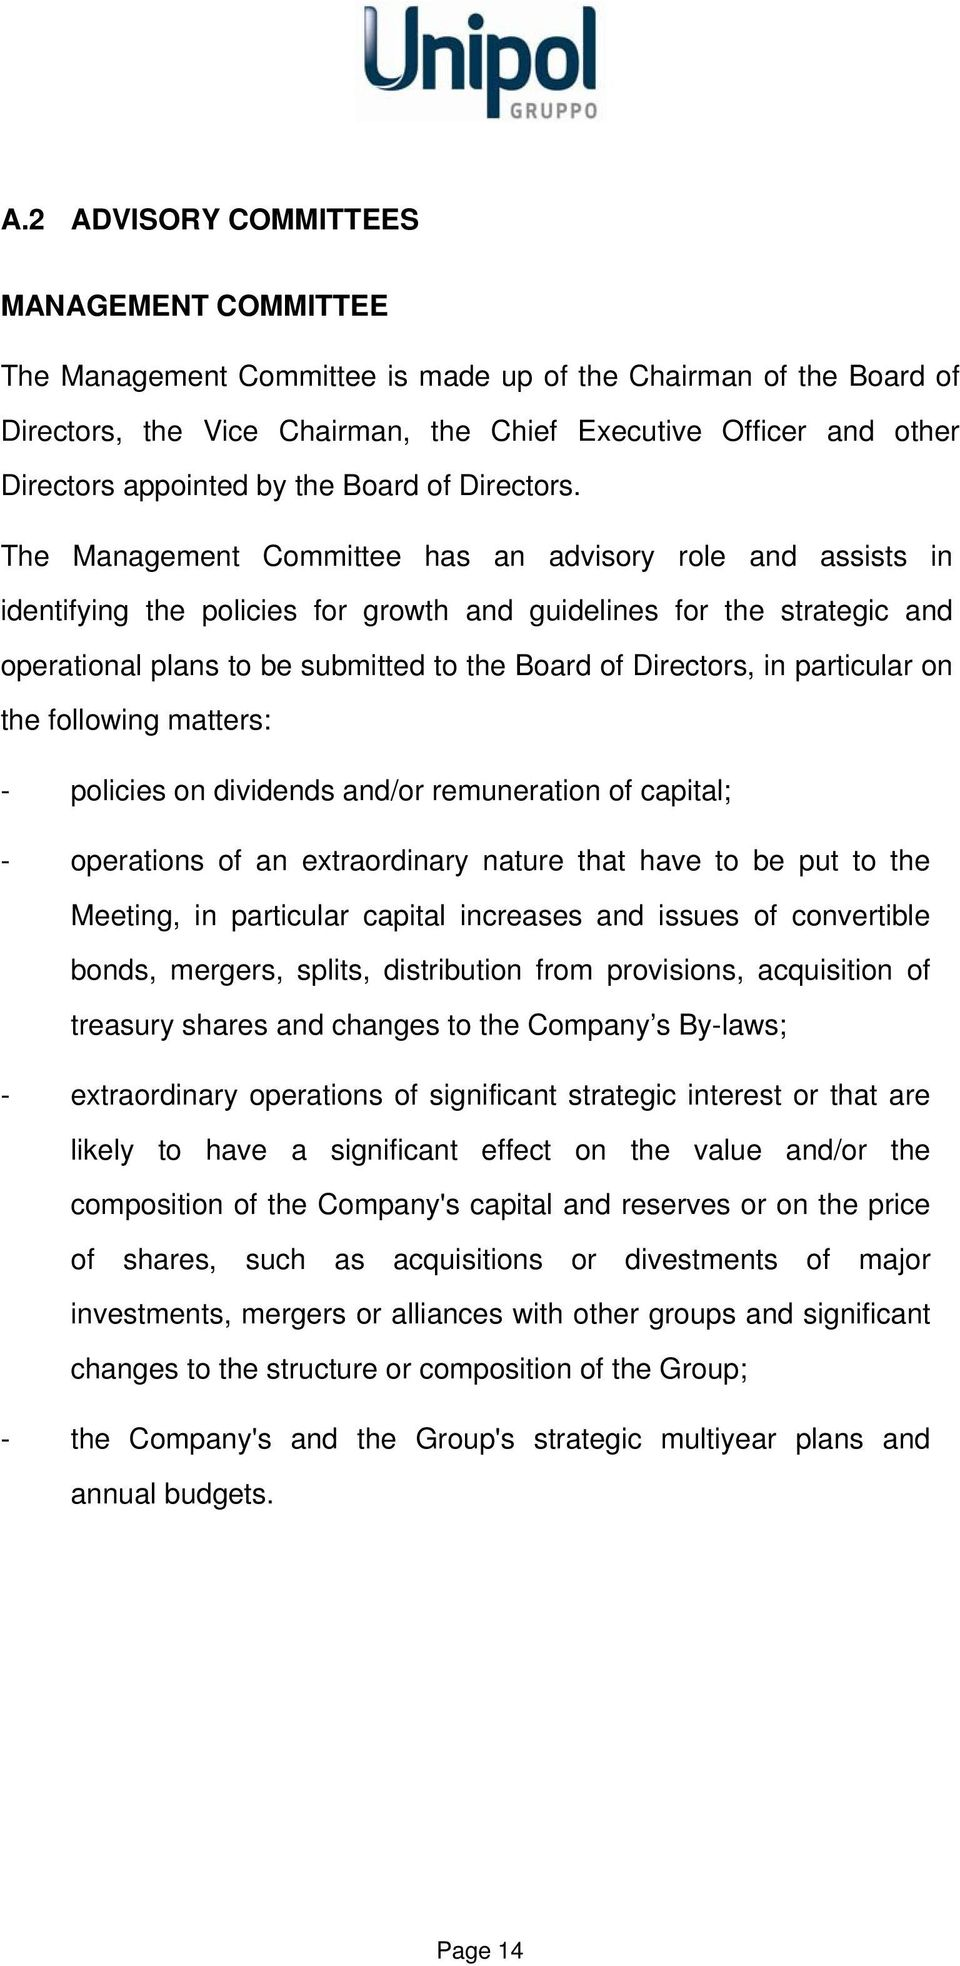 The Management Committee has an advisory role and assists in identifying the policies for growth and guidelines for the strategic and operational plans to be submitted to the Board of Directors, in